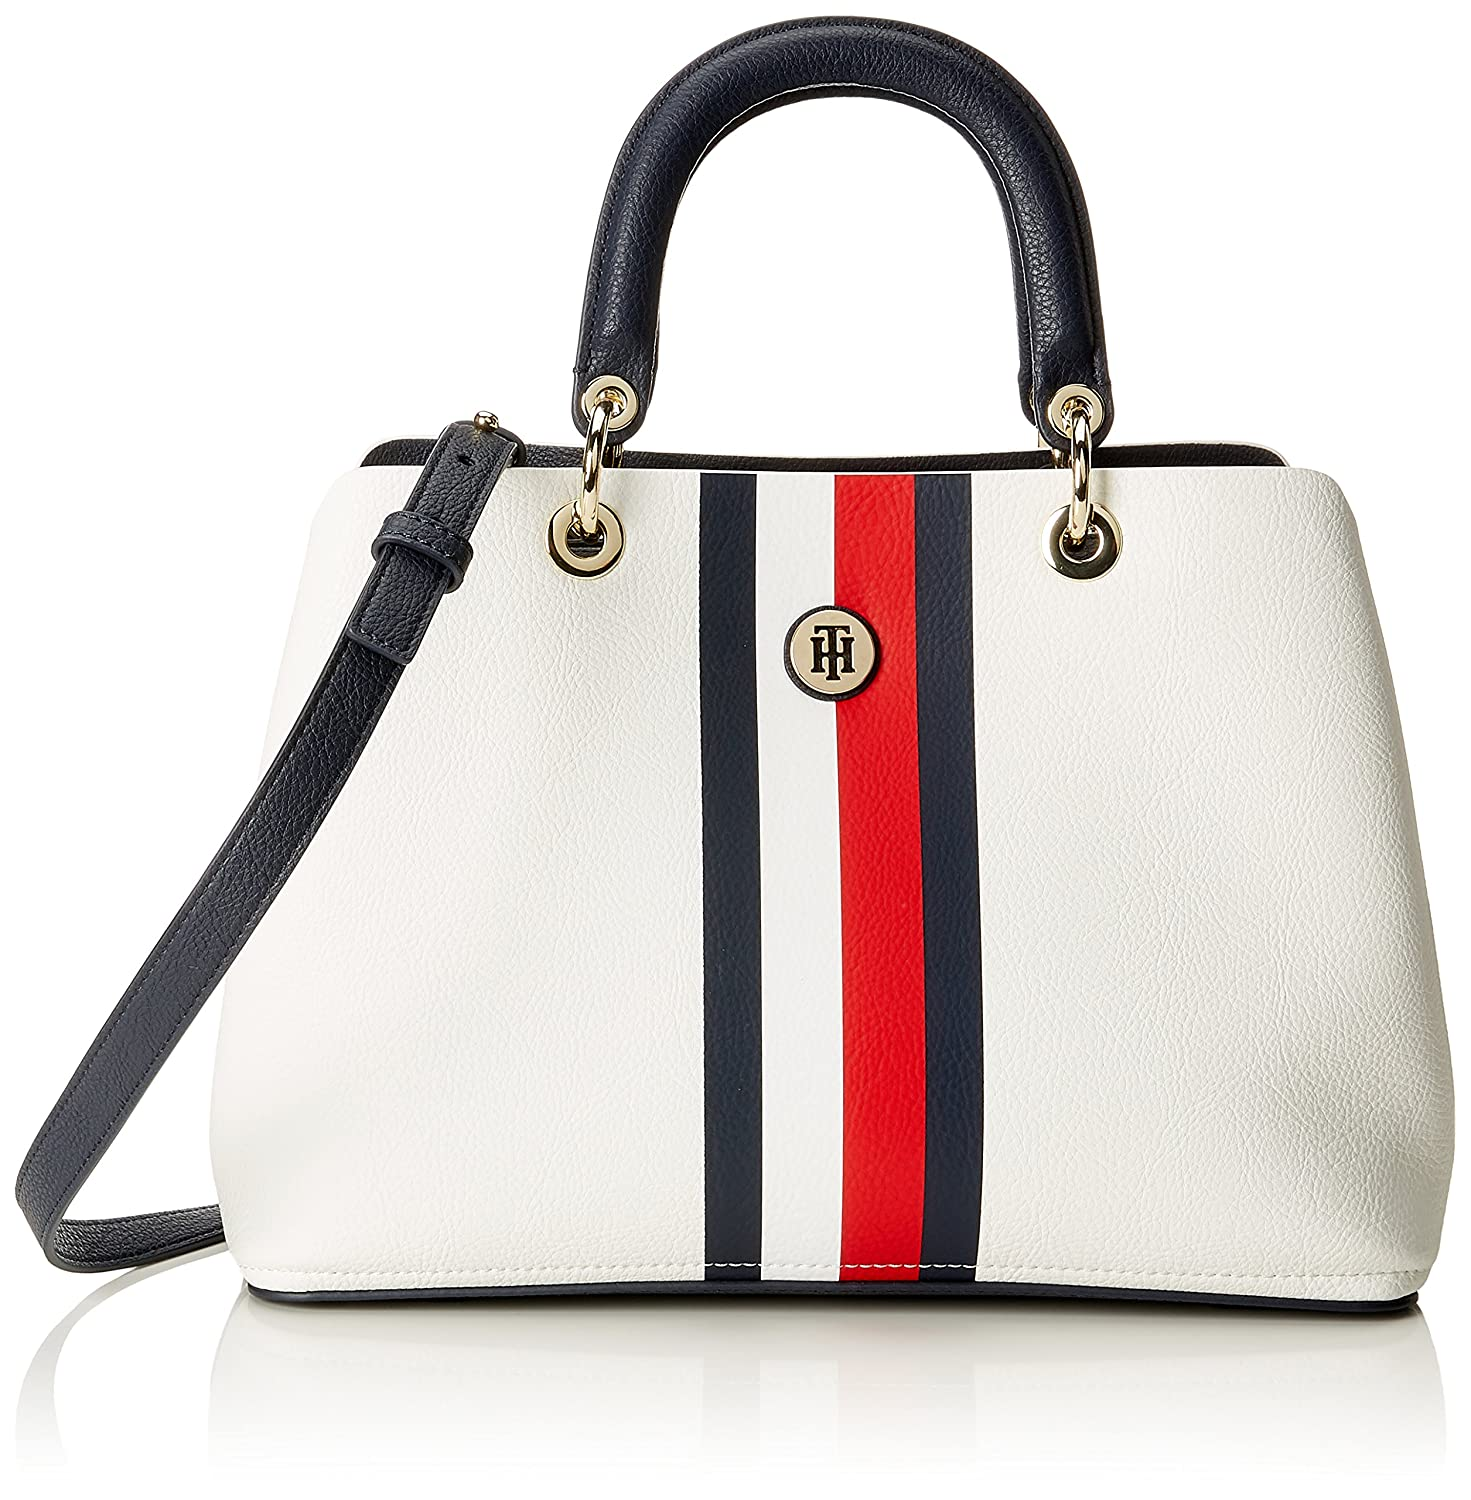 aeb870d759 Buy Tommy Hilfiger Th Core Satchel, Womenâ€TMS Bag, Blue - Corporate Mix,  15.5X23X33.5 cm - B X H T Online at Low Prices in India - Amazon.in